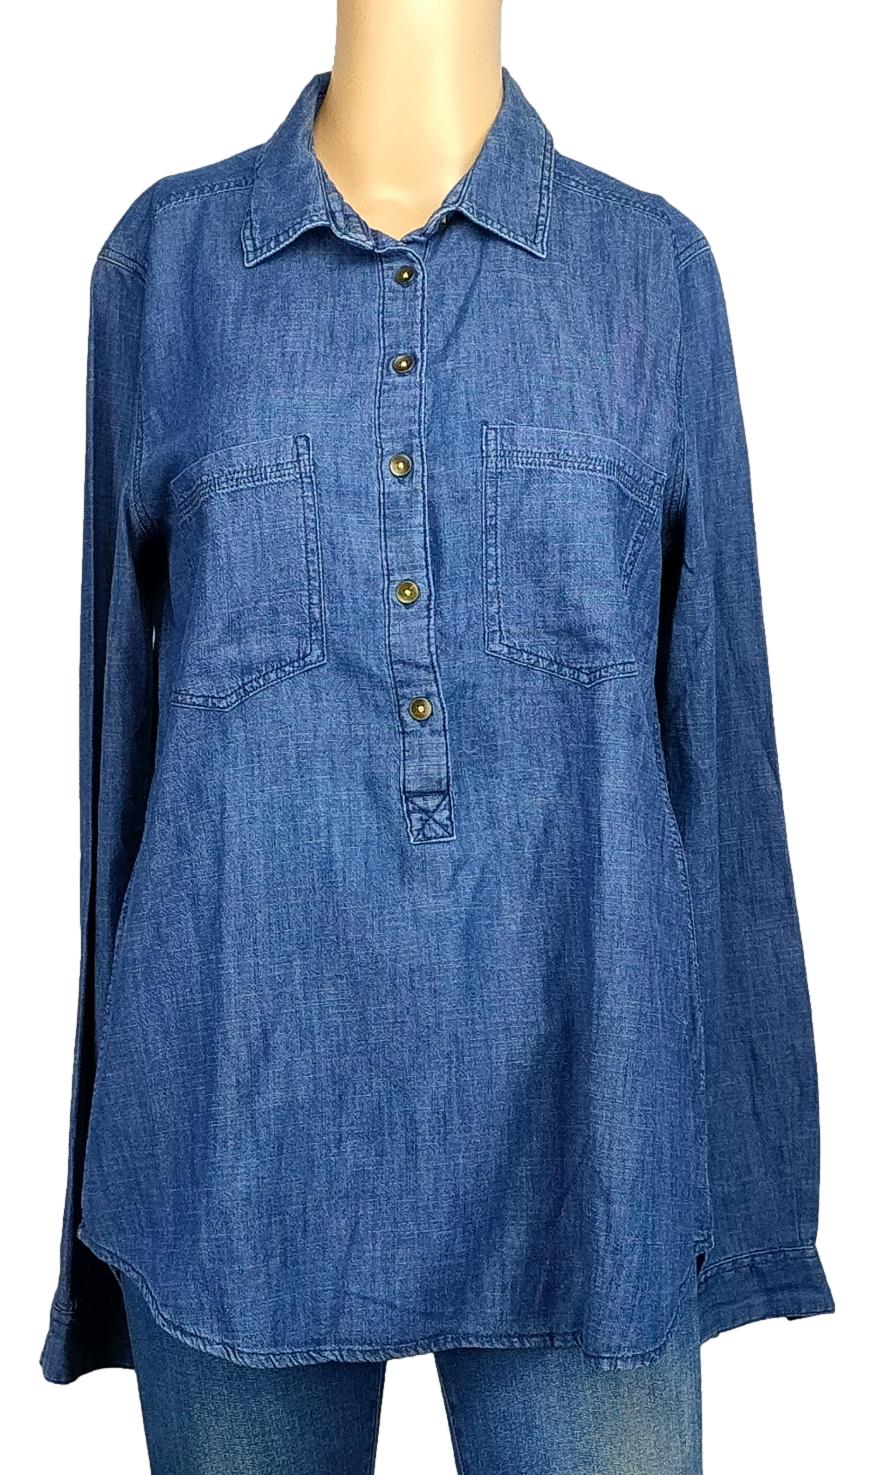 Blouse H&M - Taille 38